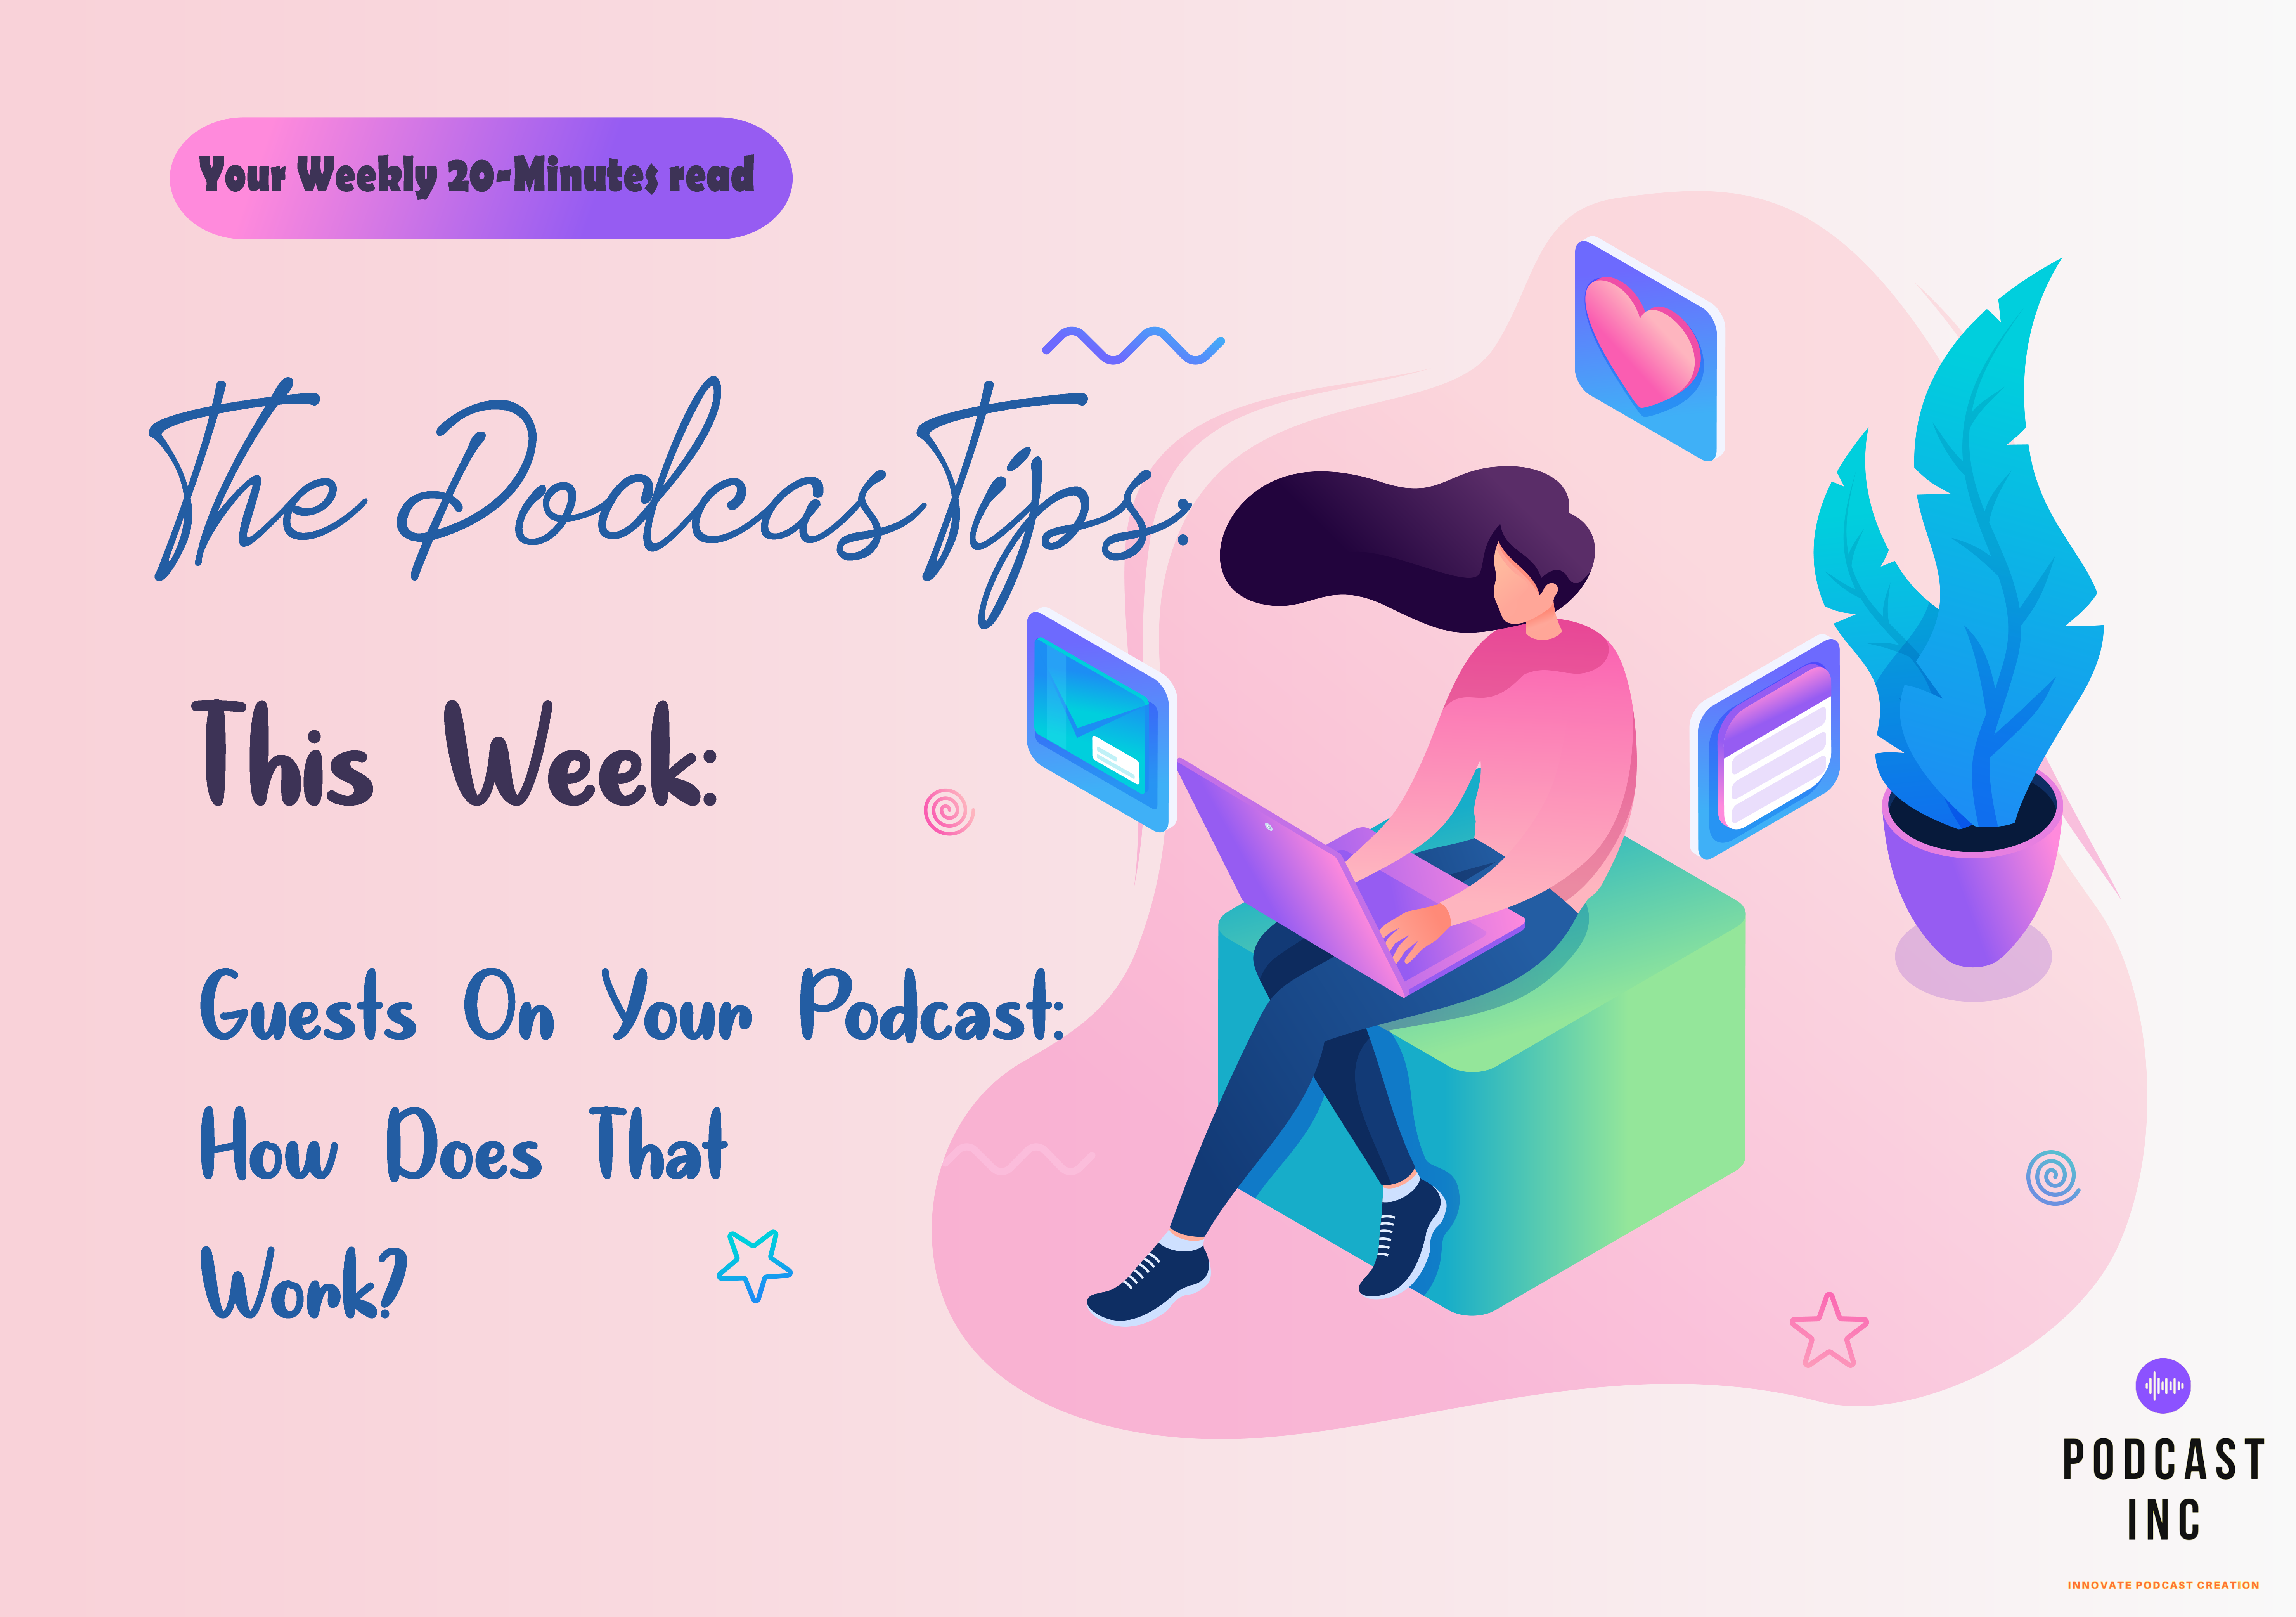 Guests On Your Podcast: How Does That Work?